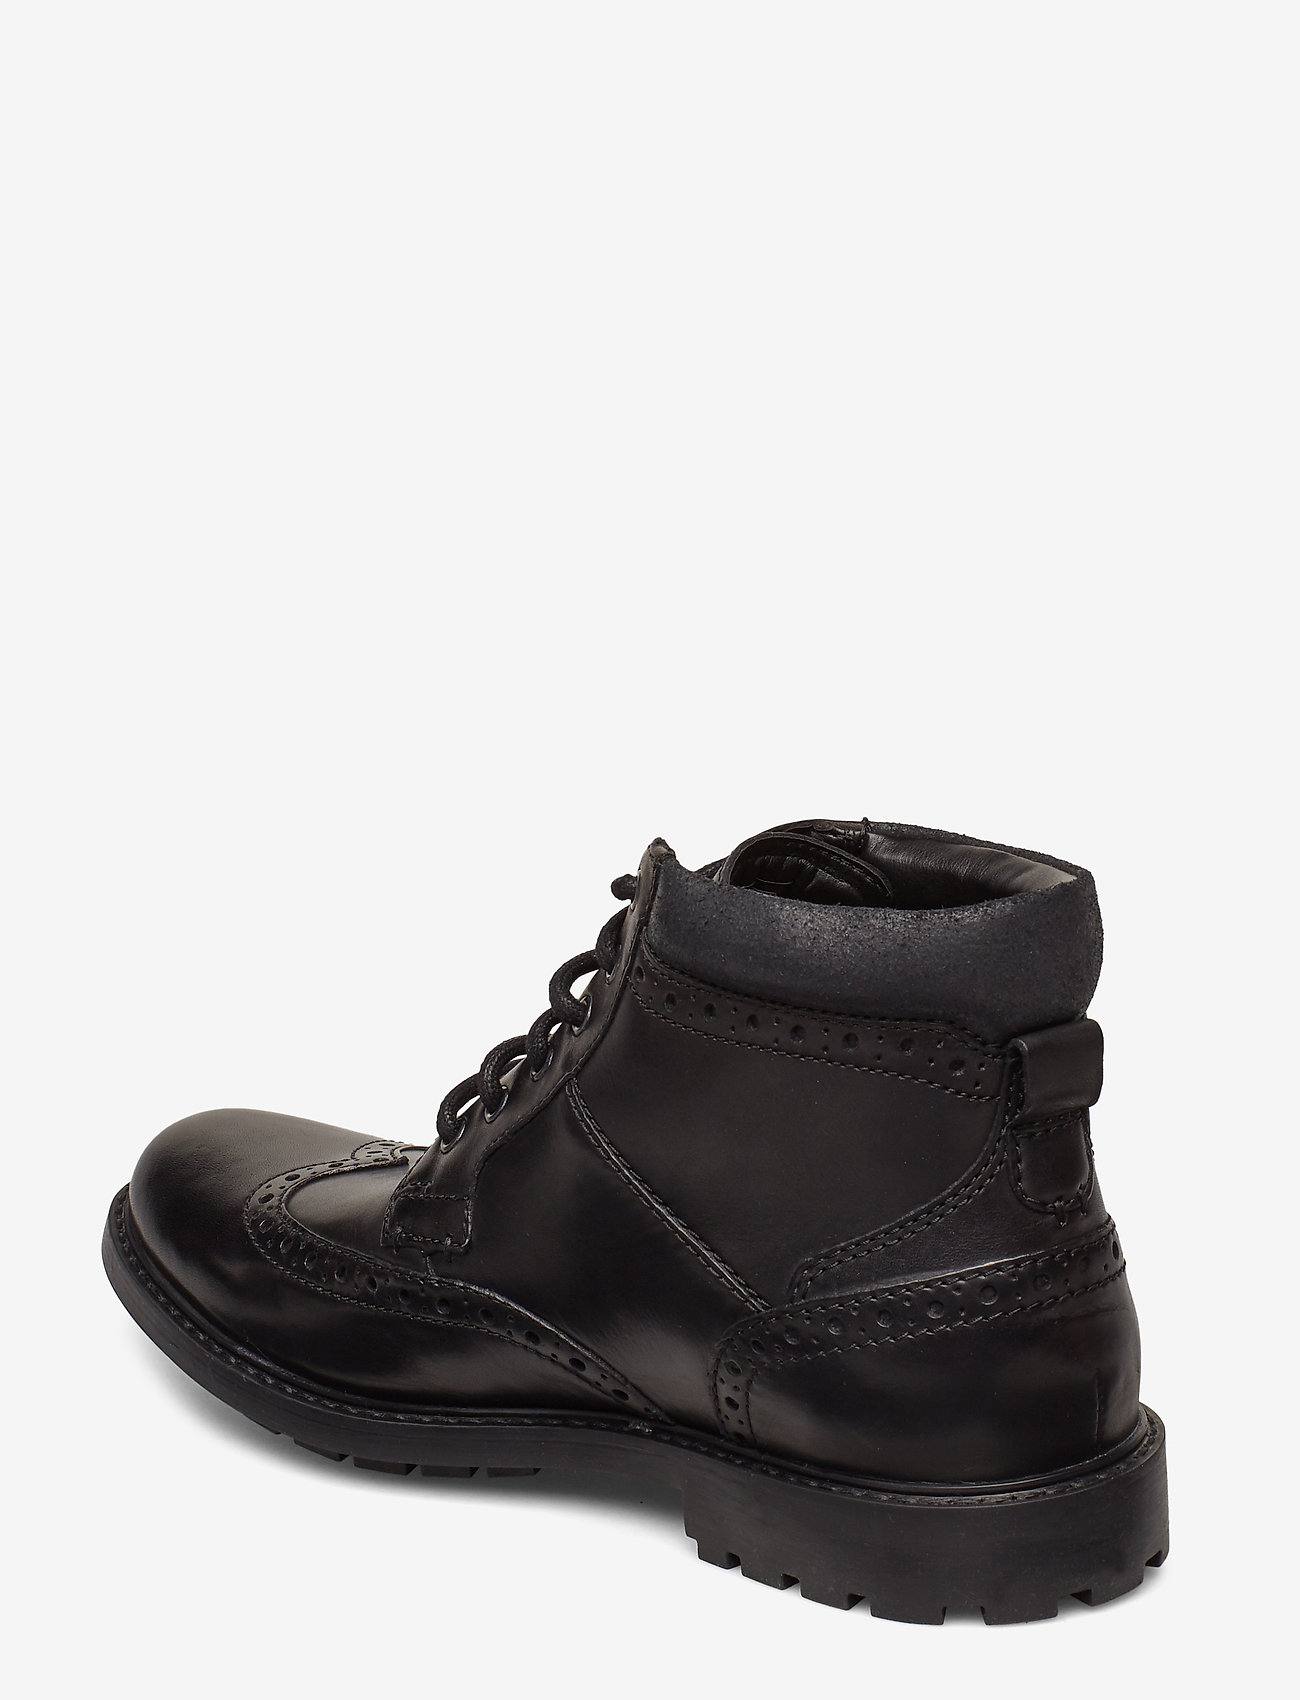 Curington Rise (Blk Smooth Lea) - Clarks